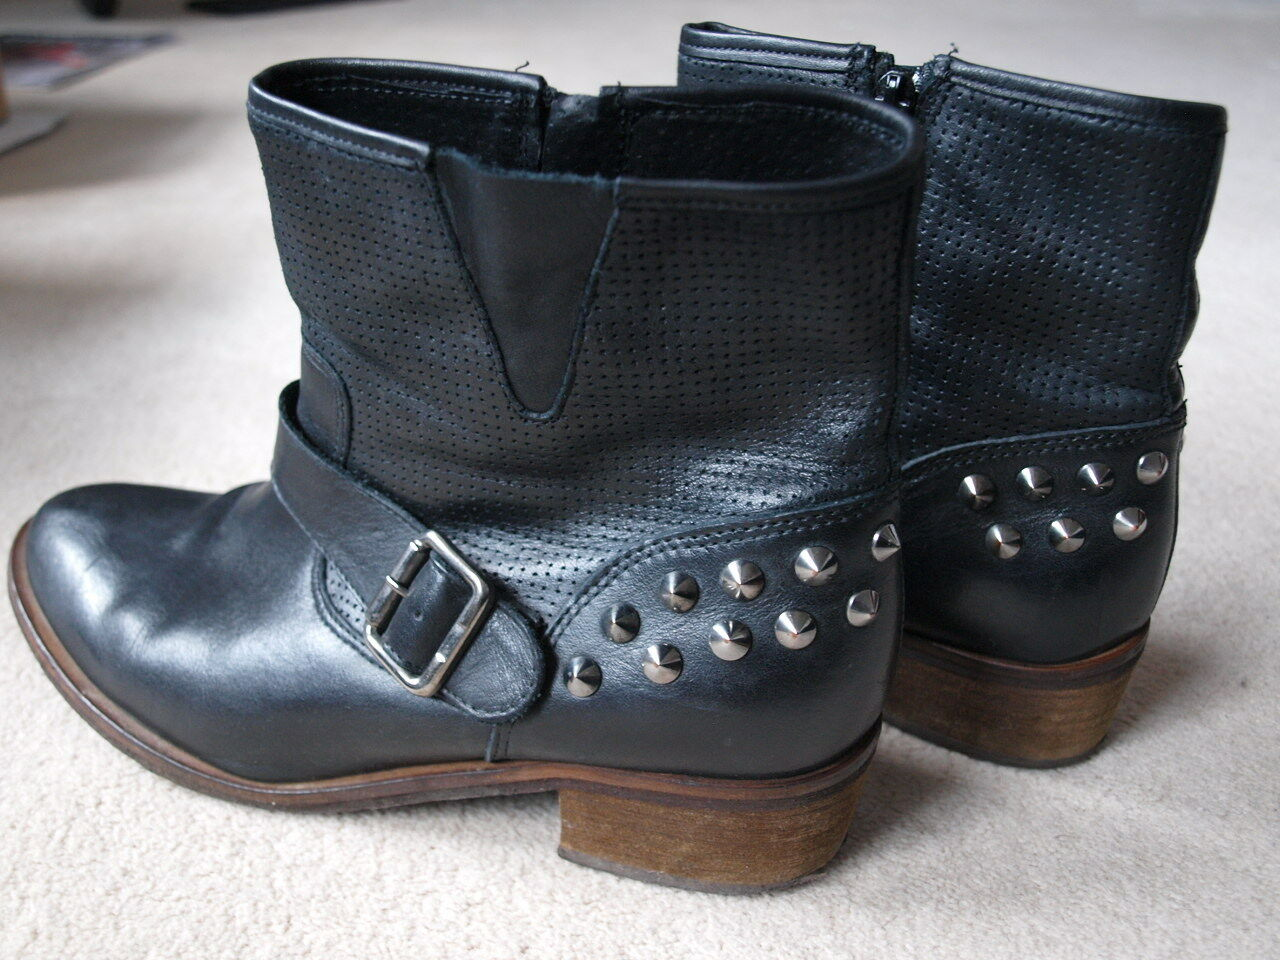 Bertie Black Leather Studded Ankle Boots Size 6 in VGC